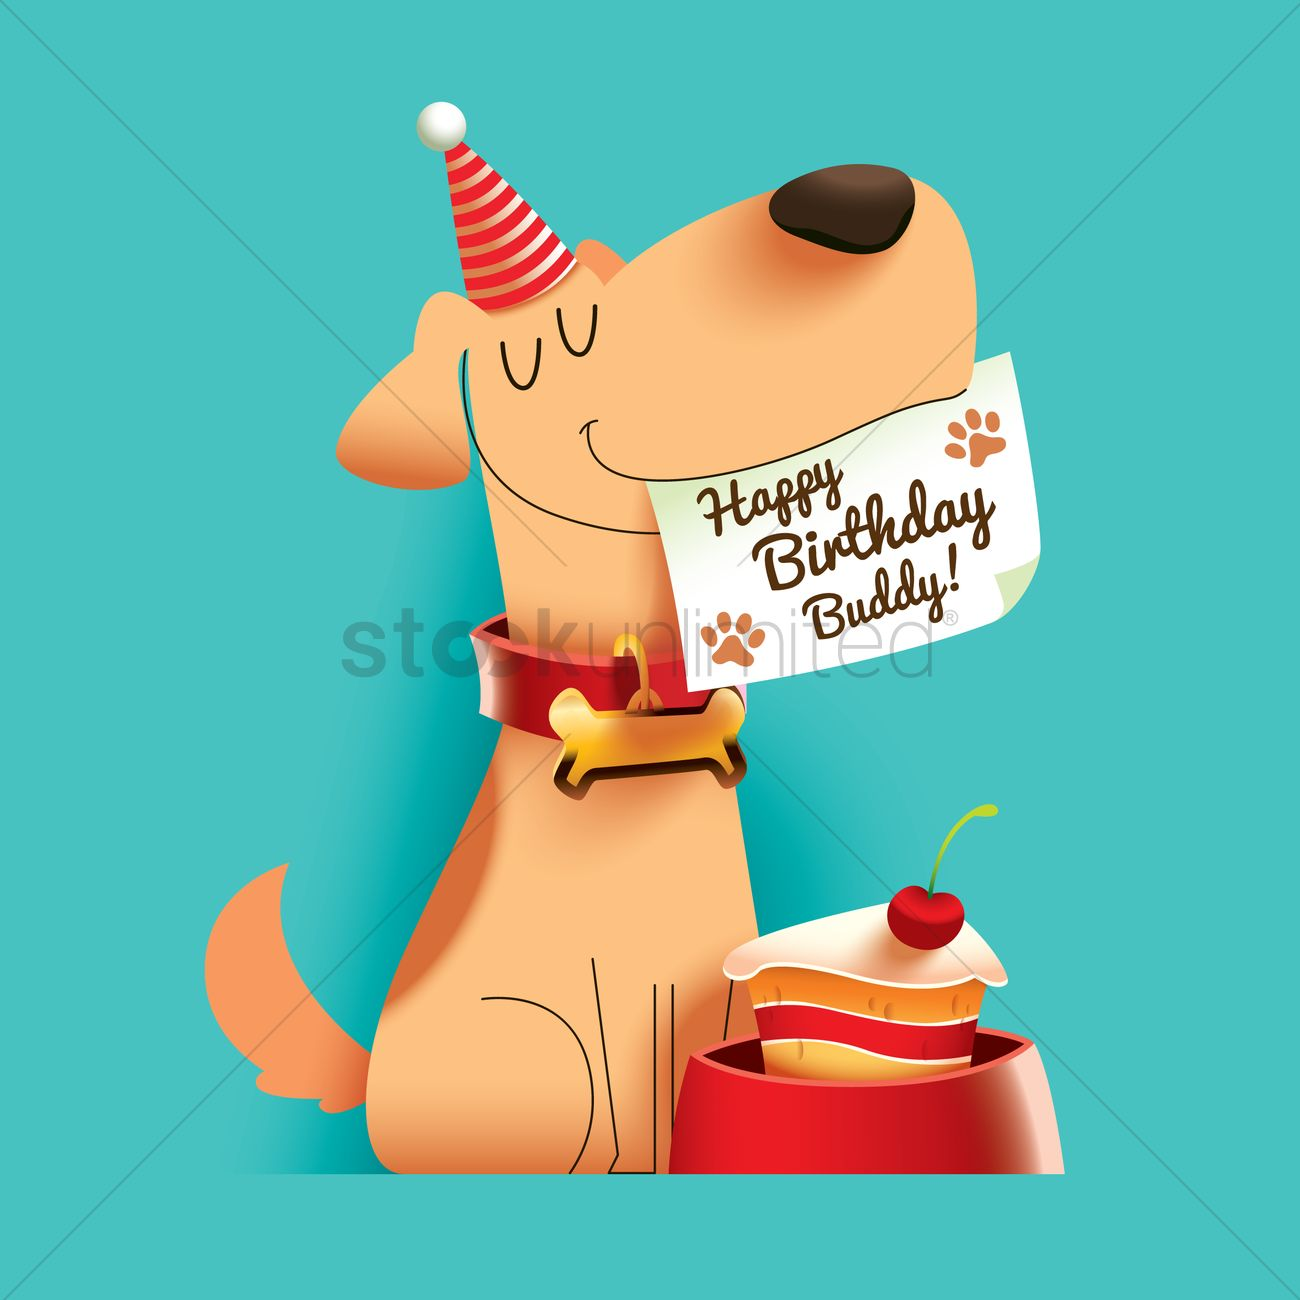 dog with happy birthday buddy note vector image 1797678 clip art dog paw heart clip art dog paws free